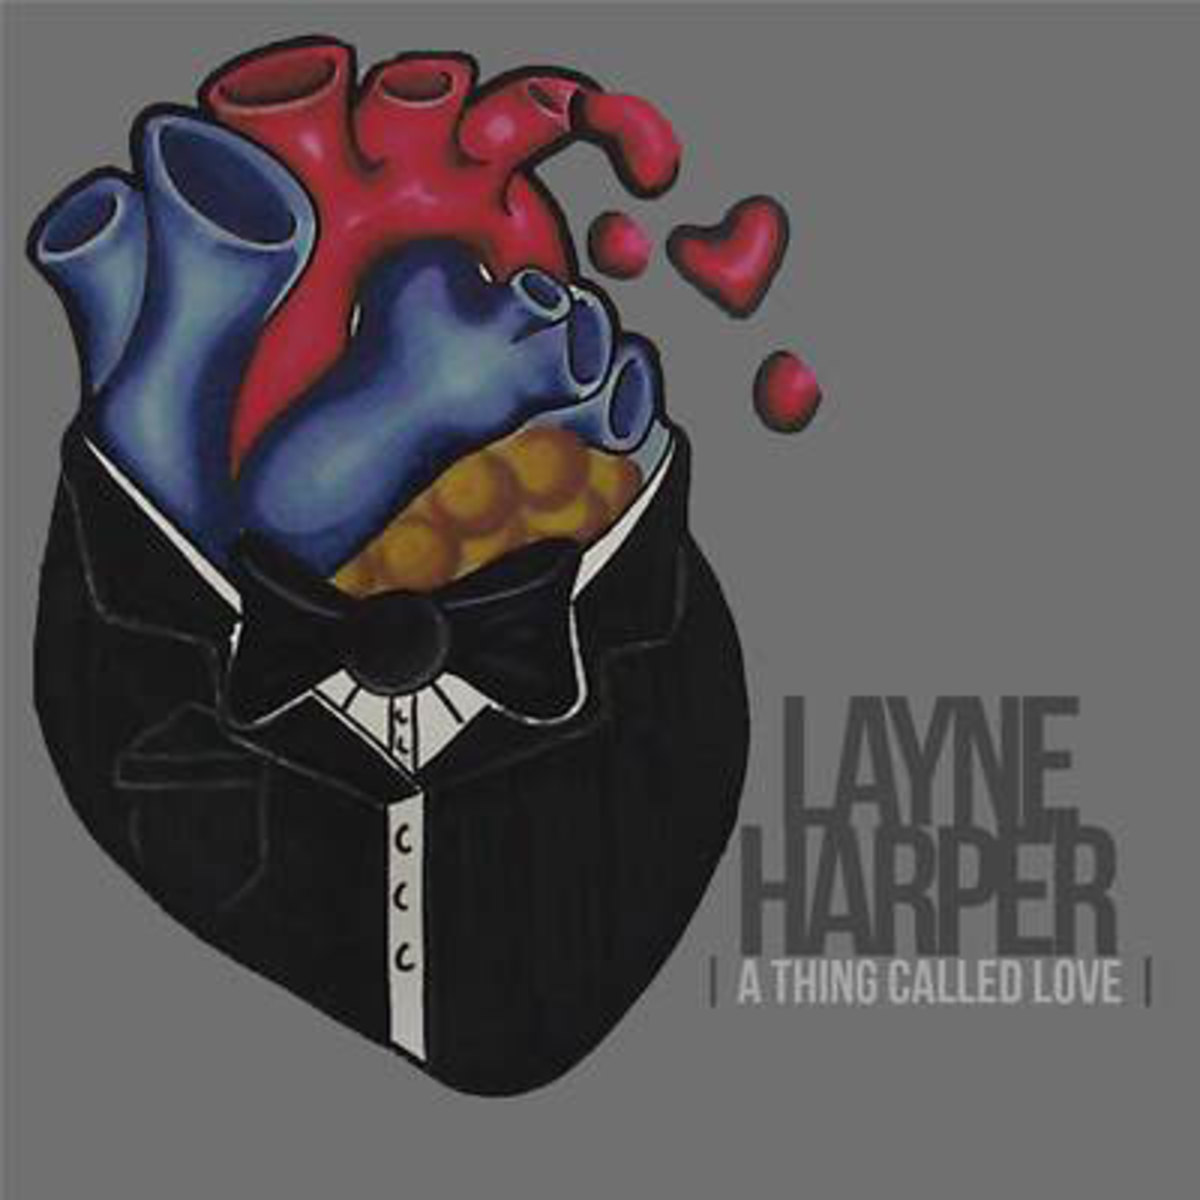 layneharper-thingcalledlove.jpg